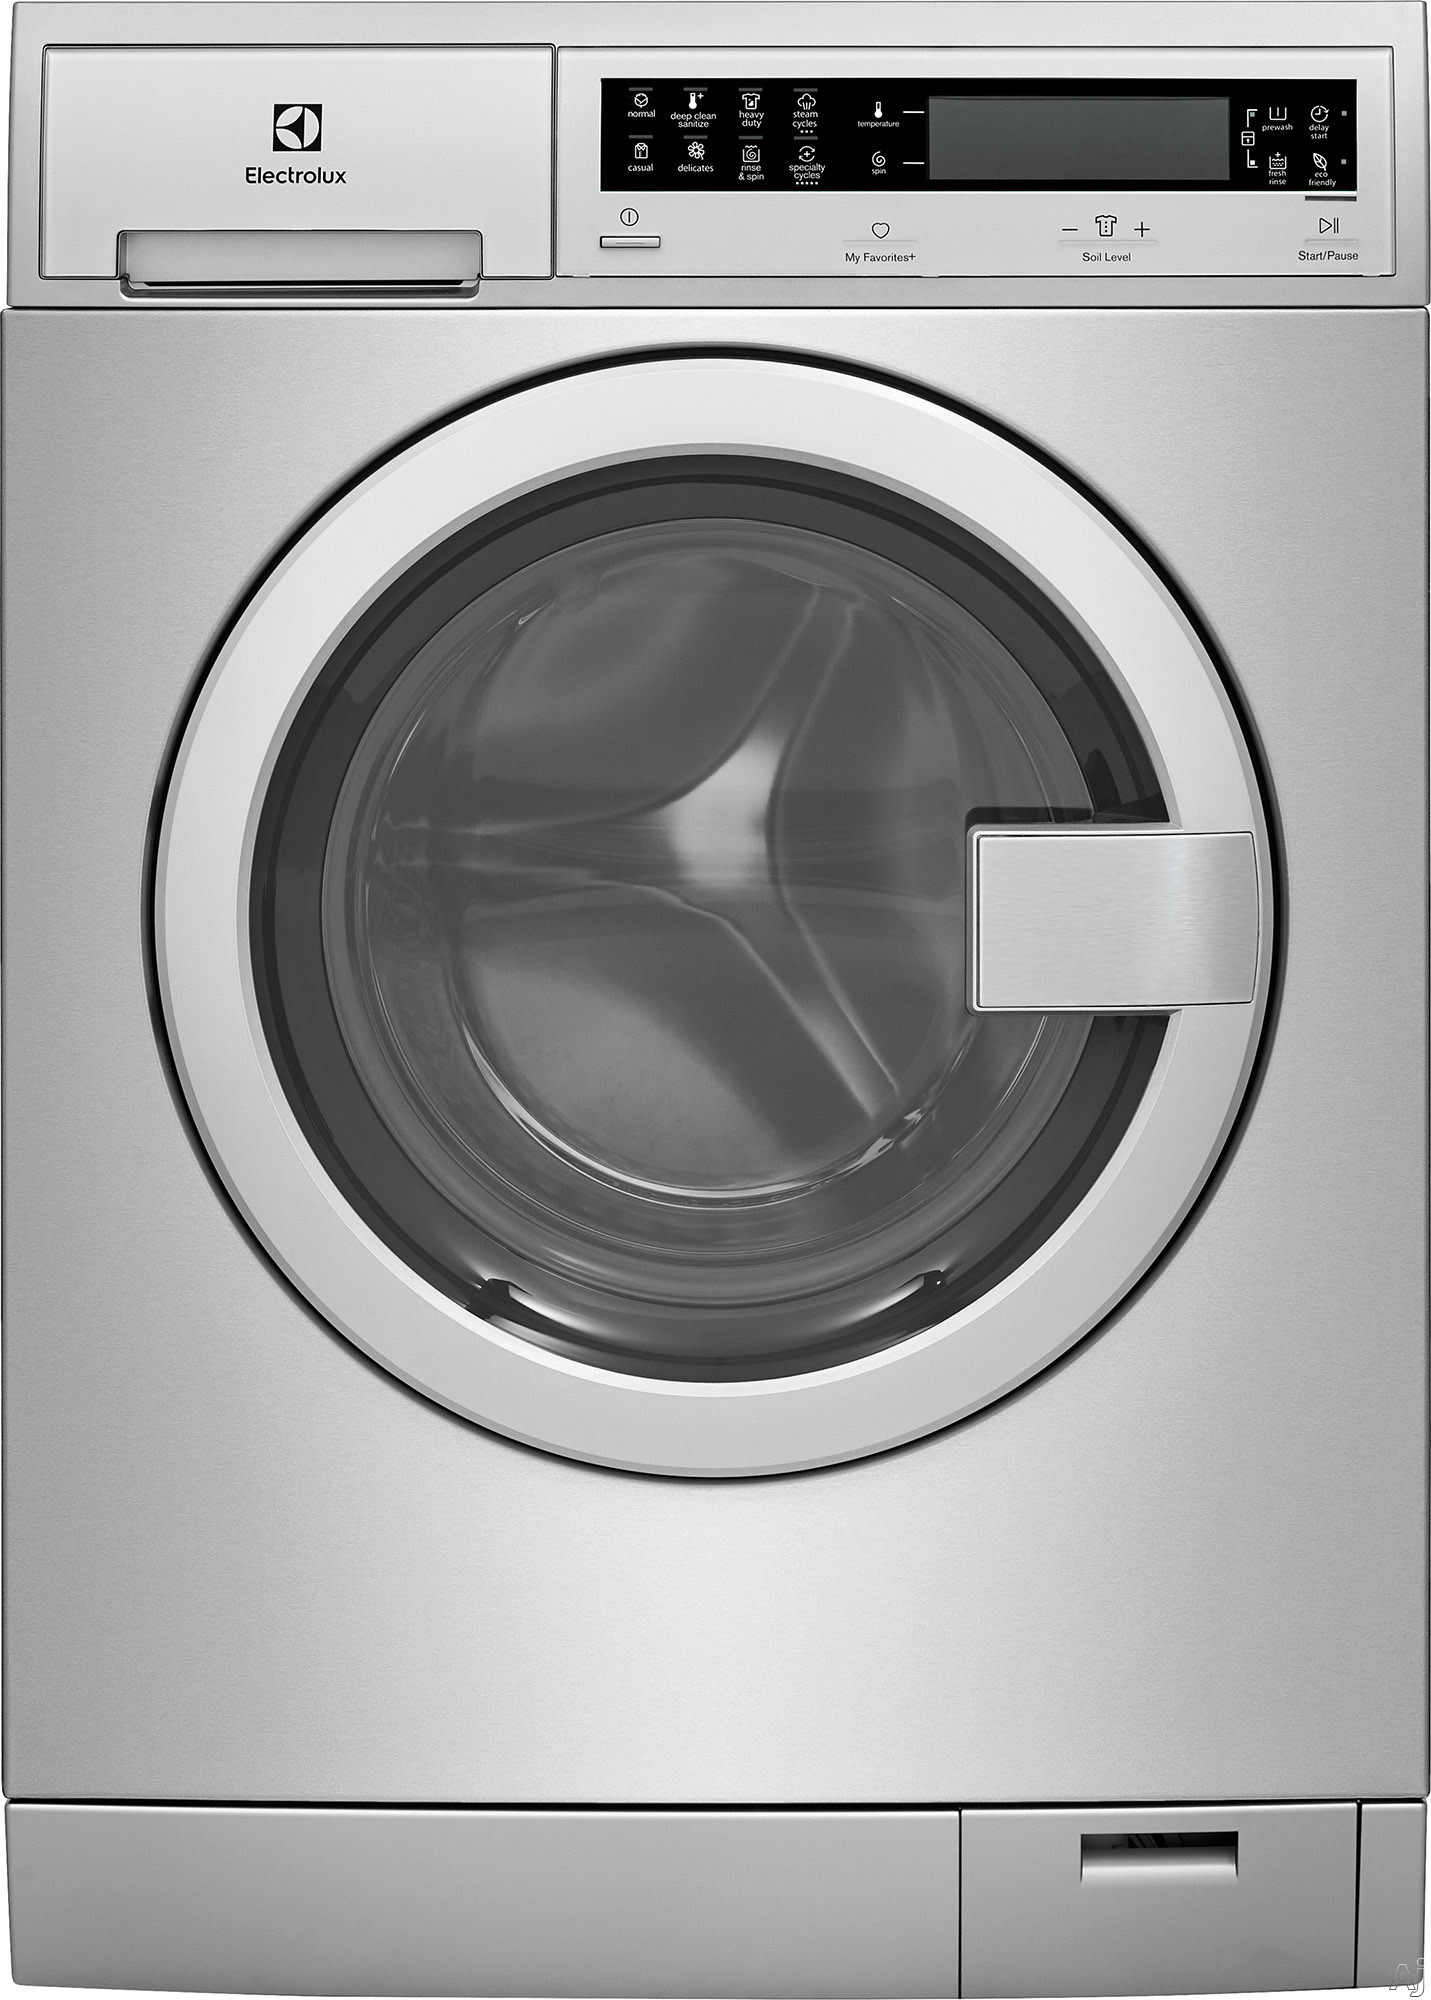 Electrolux EFLS210TIS 24 Inch Front Load Washer with Perfect Steam™, ExpertCare™ Wash, IQ-Touch™ Controls, Fast Wash, Sanitized, Luxury-Quiet™, Automatic Water Adjustment, Perfect Balance System®, 14 Cycles, 2.4 cu. ft. and Energy Star® Rated: